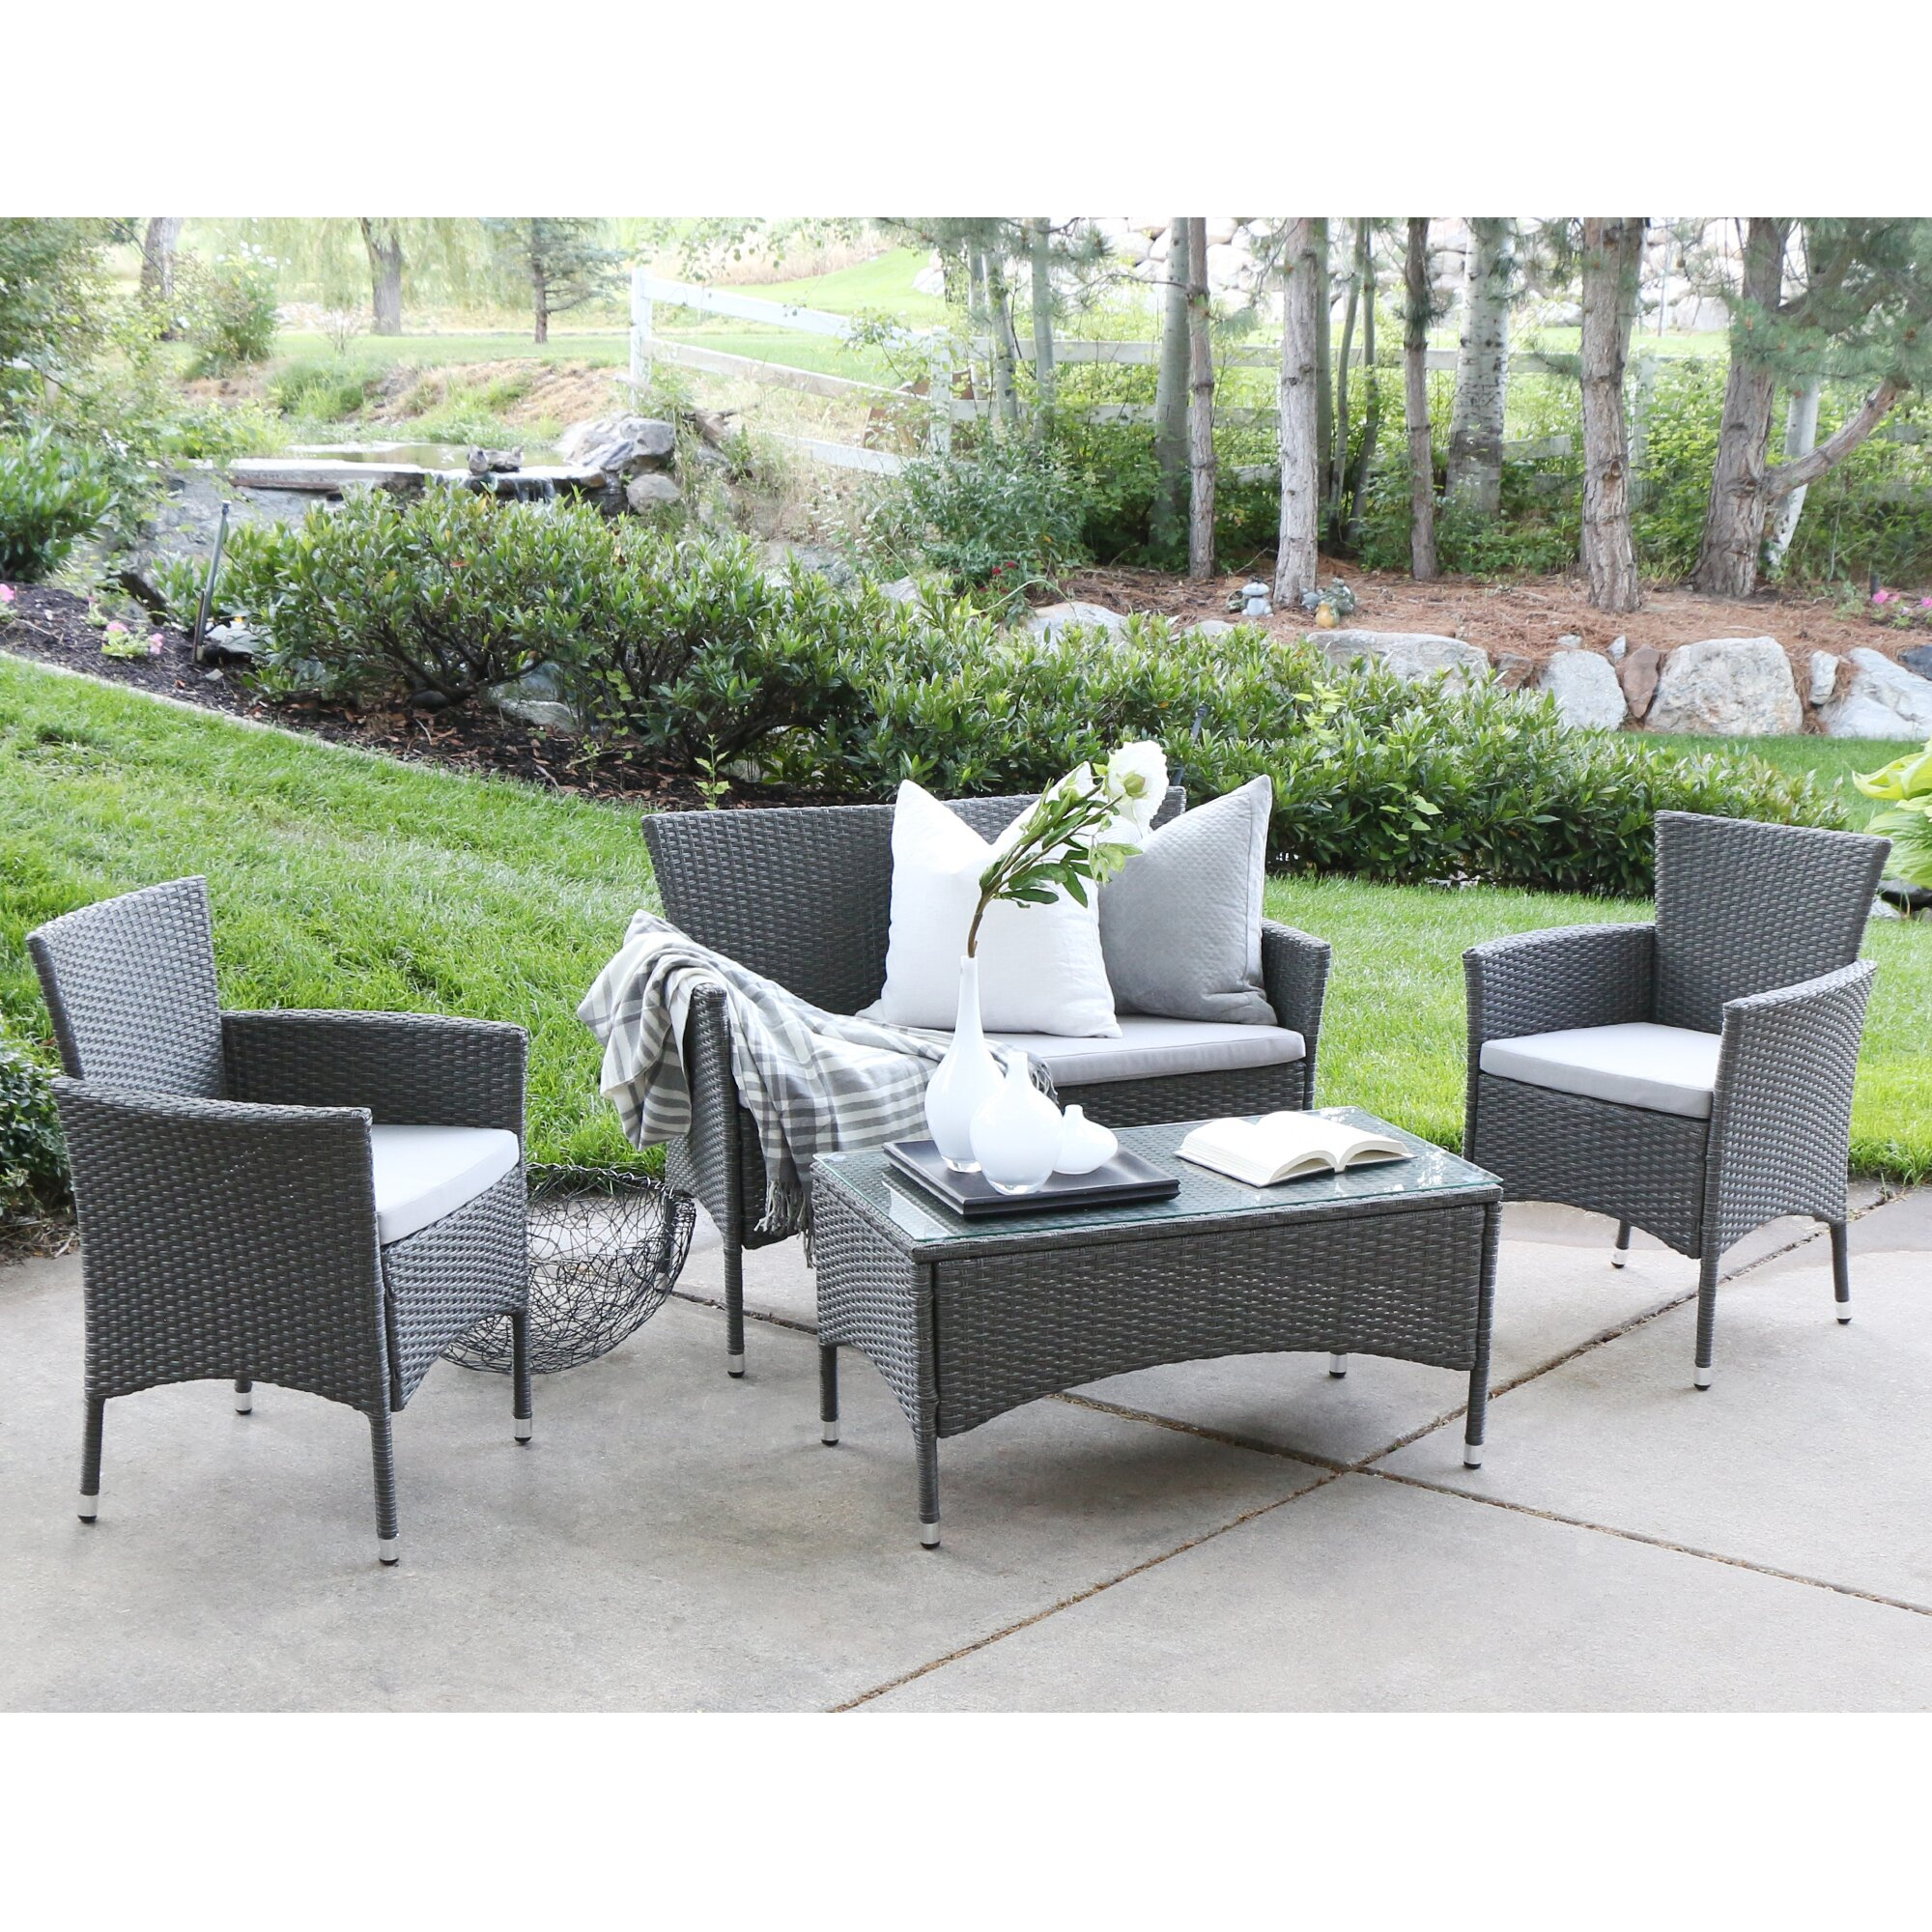 Angelo home baxter 4 piece lounge seating group with cushions reviews wayfair supply Angelo home patio furniture